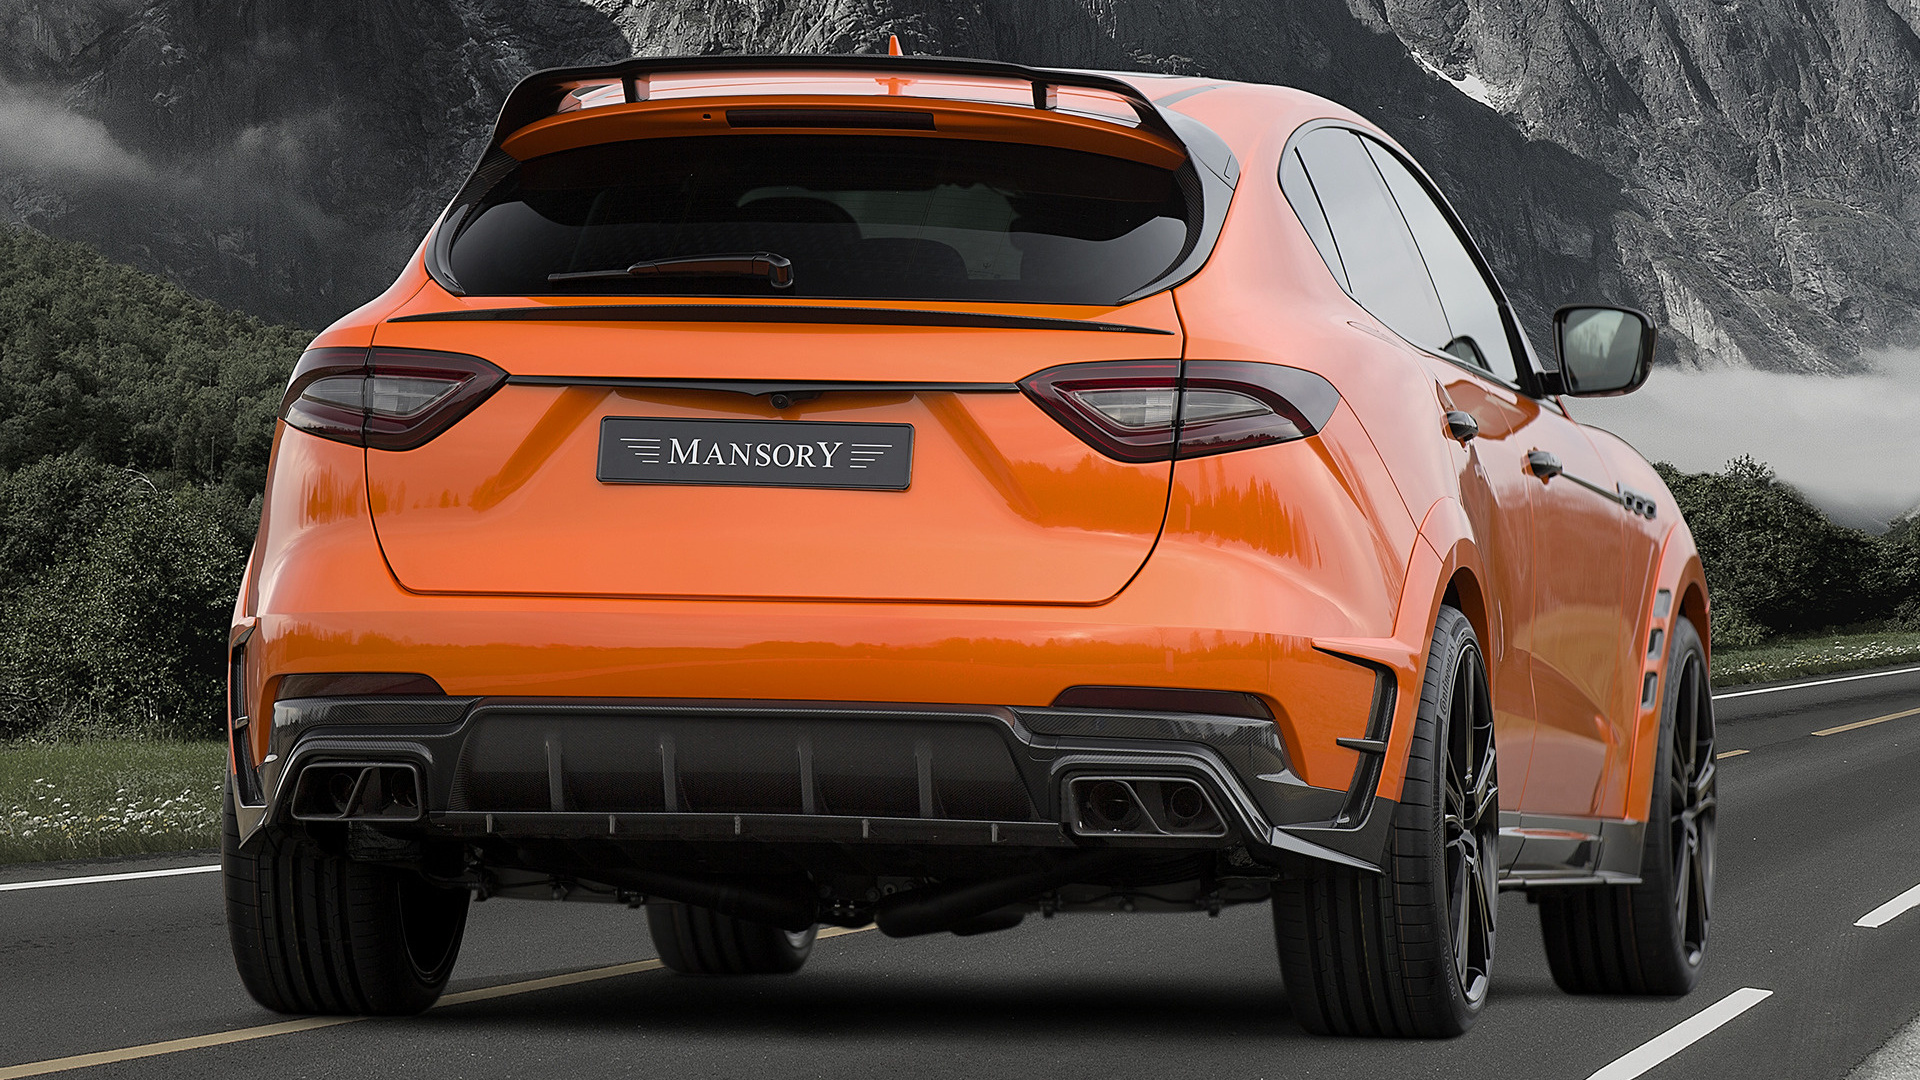 2017 maserati levante by mansory wallpapers and hd images car pixel - Maserati levante wallpaper ...